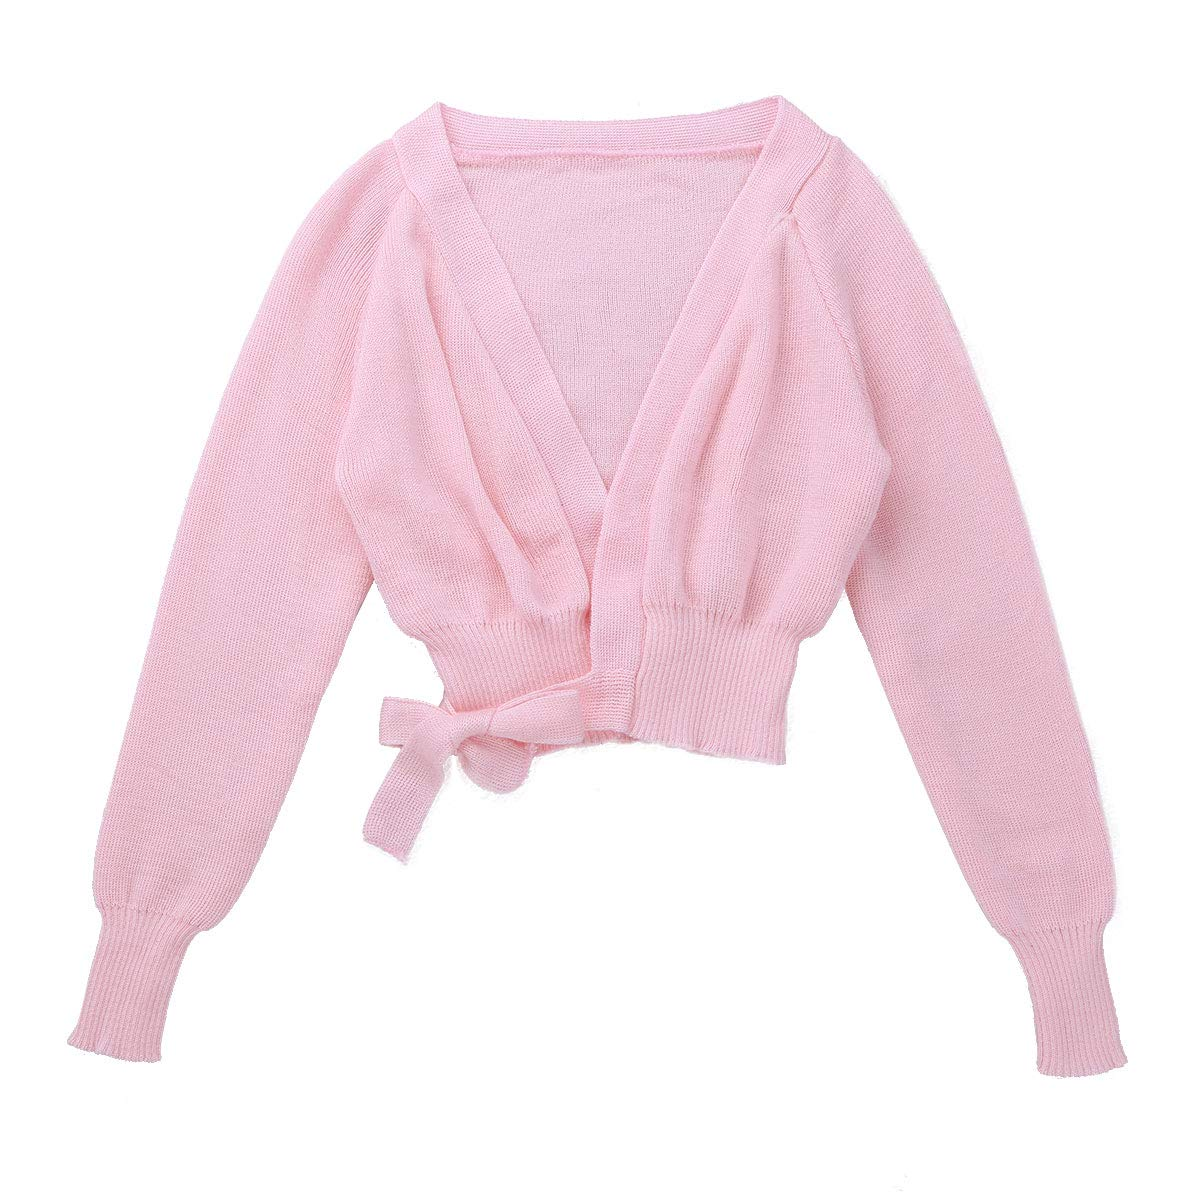 dPois Kids Girls Long Sleeves Knitted Sweater Shrug Cardigan Gymnastics Ballet Dance Dress Cover Up